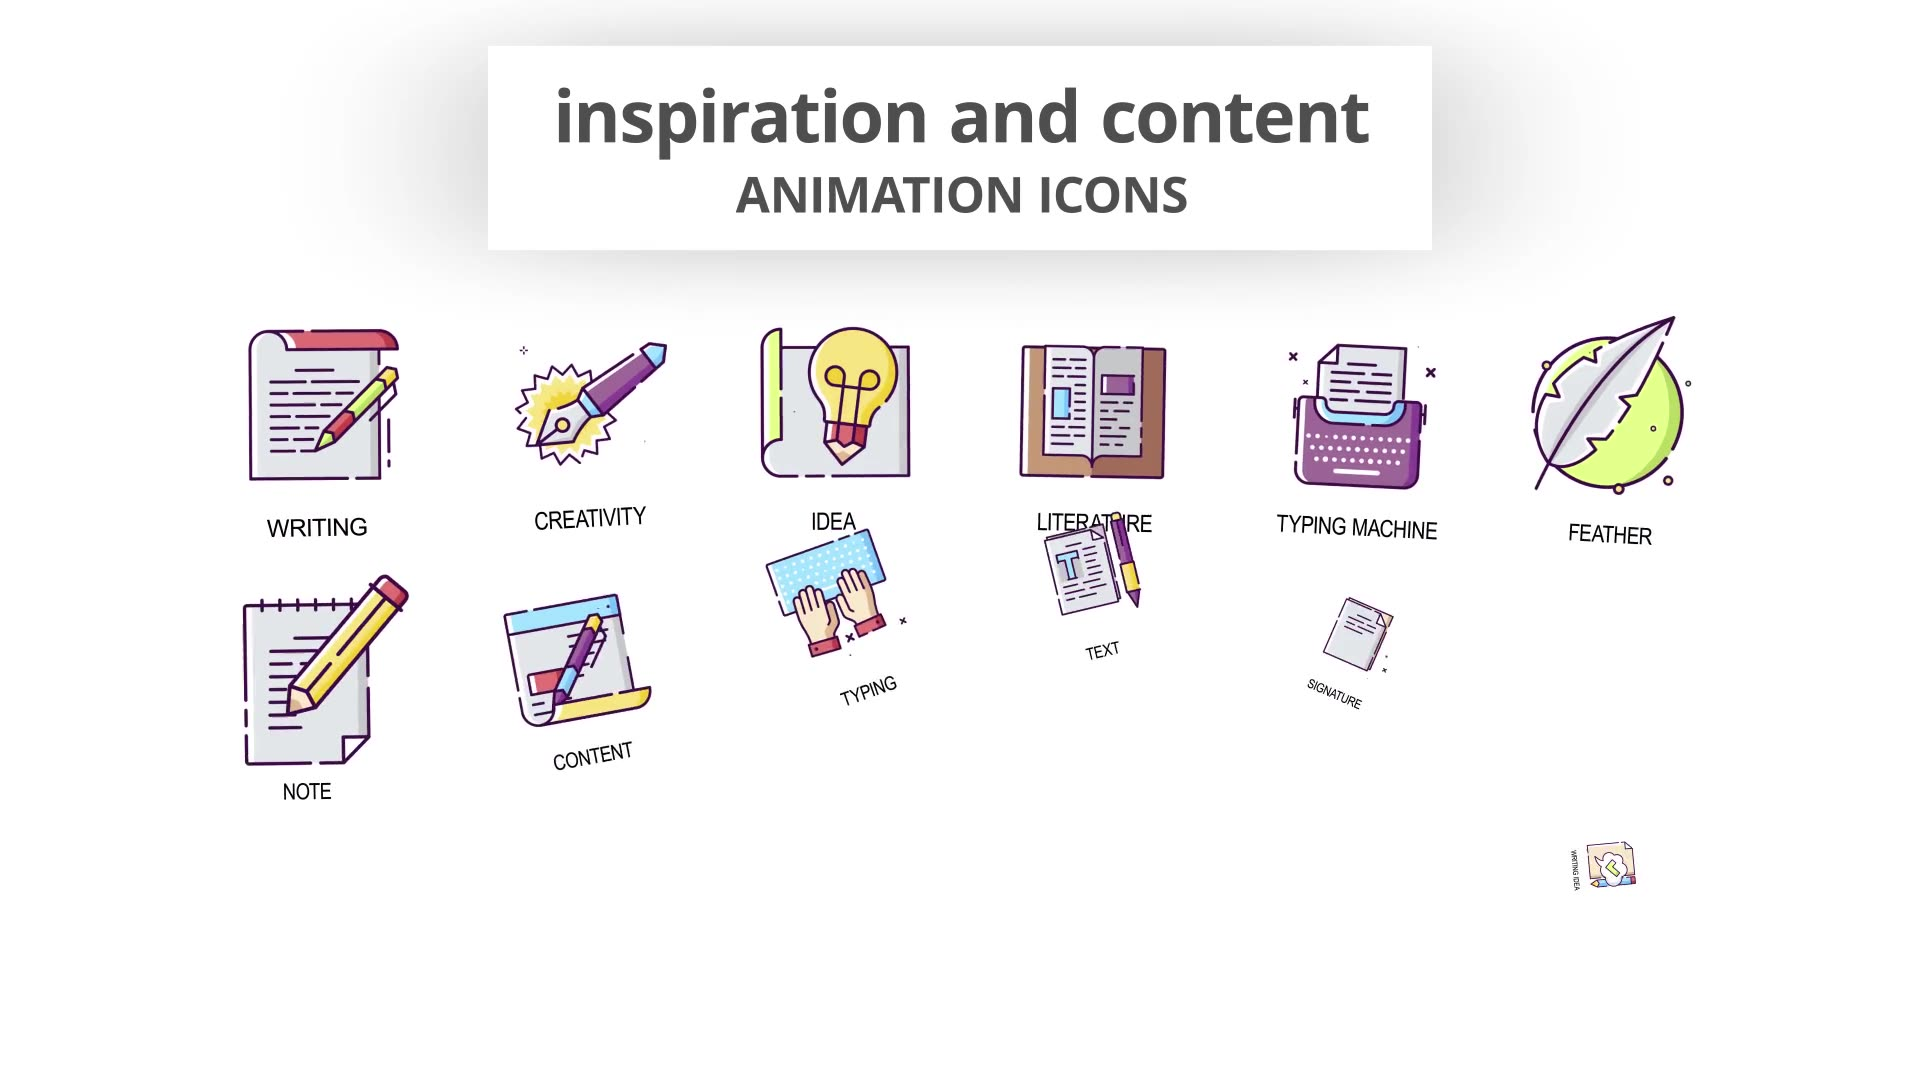 Inspiration & Content Animation Icons Videohive 30041554 After Effects Image 4